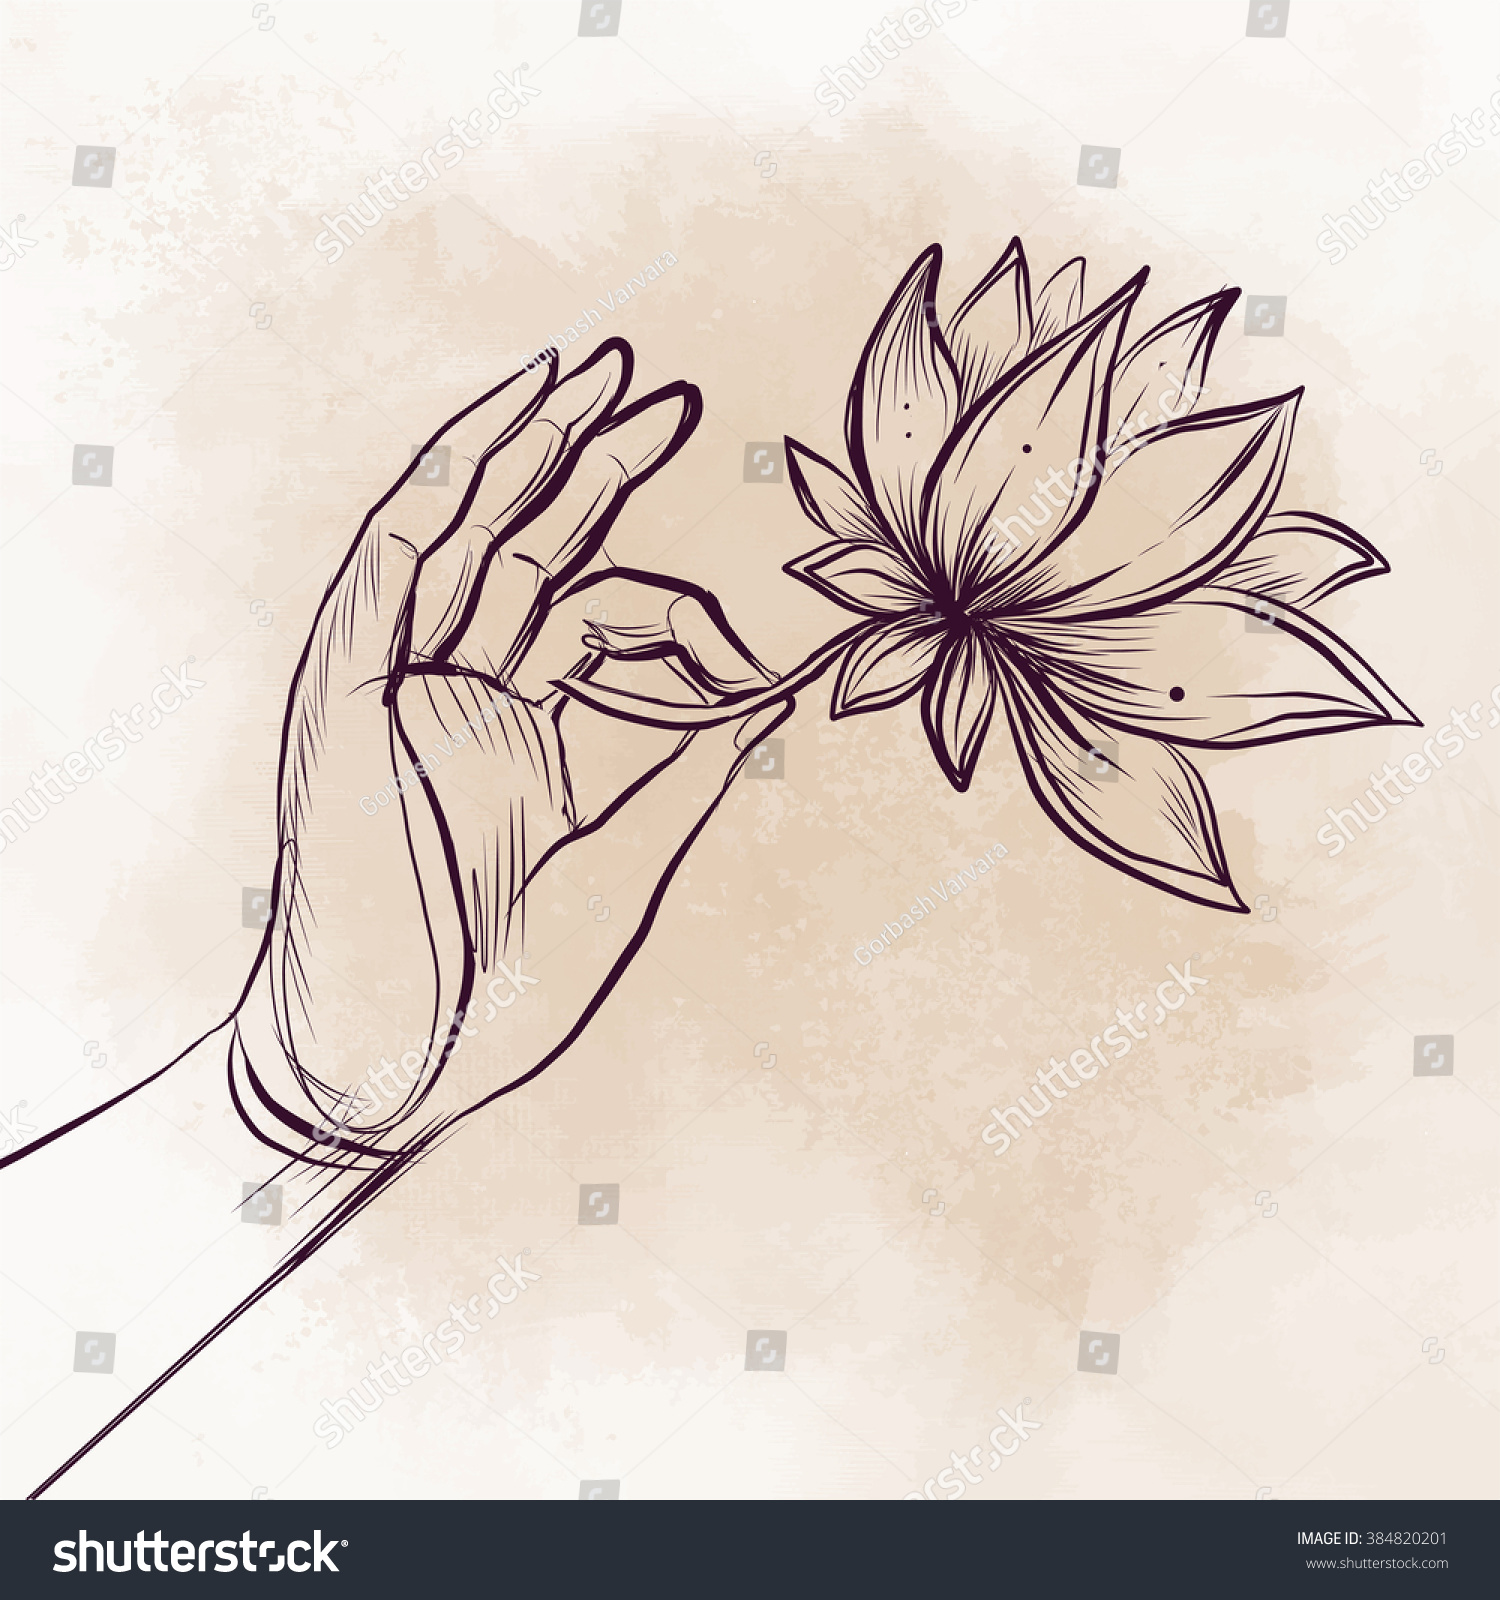 Lord buddhas hand holding lotus flower stock vector royalty free lord buddhas hand holding lotus flower vector illustration of mudra over beige retro background hindu izmirmasajfo